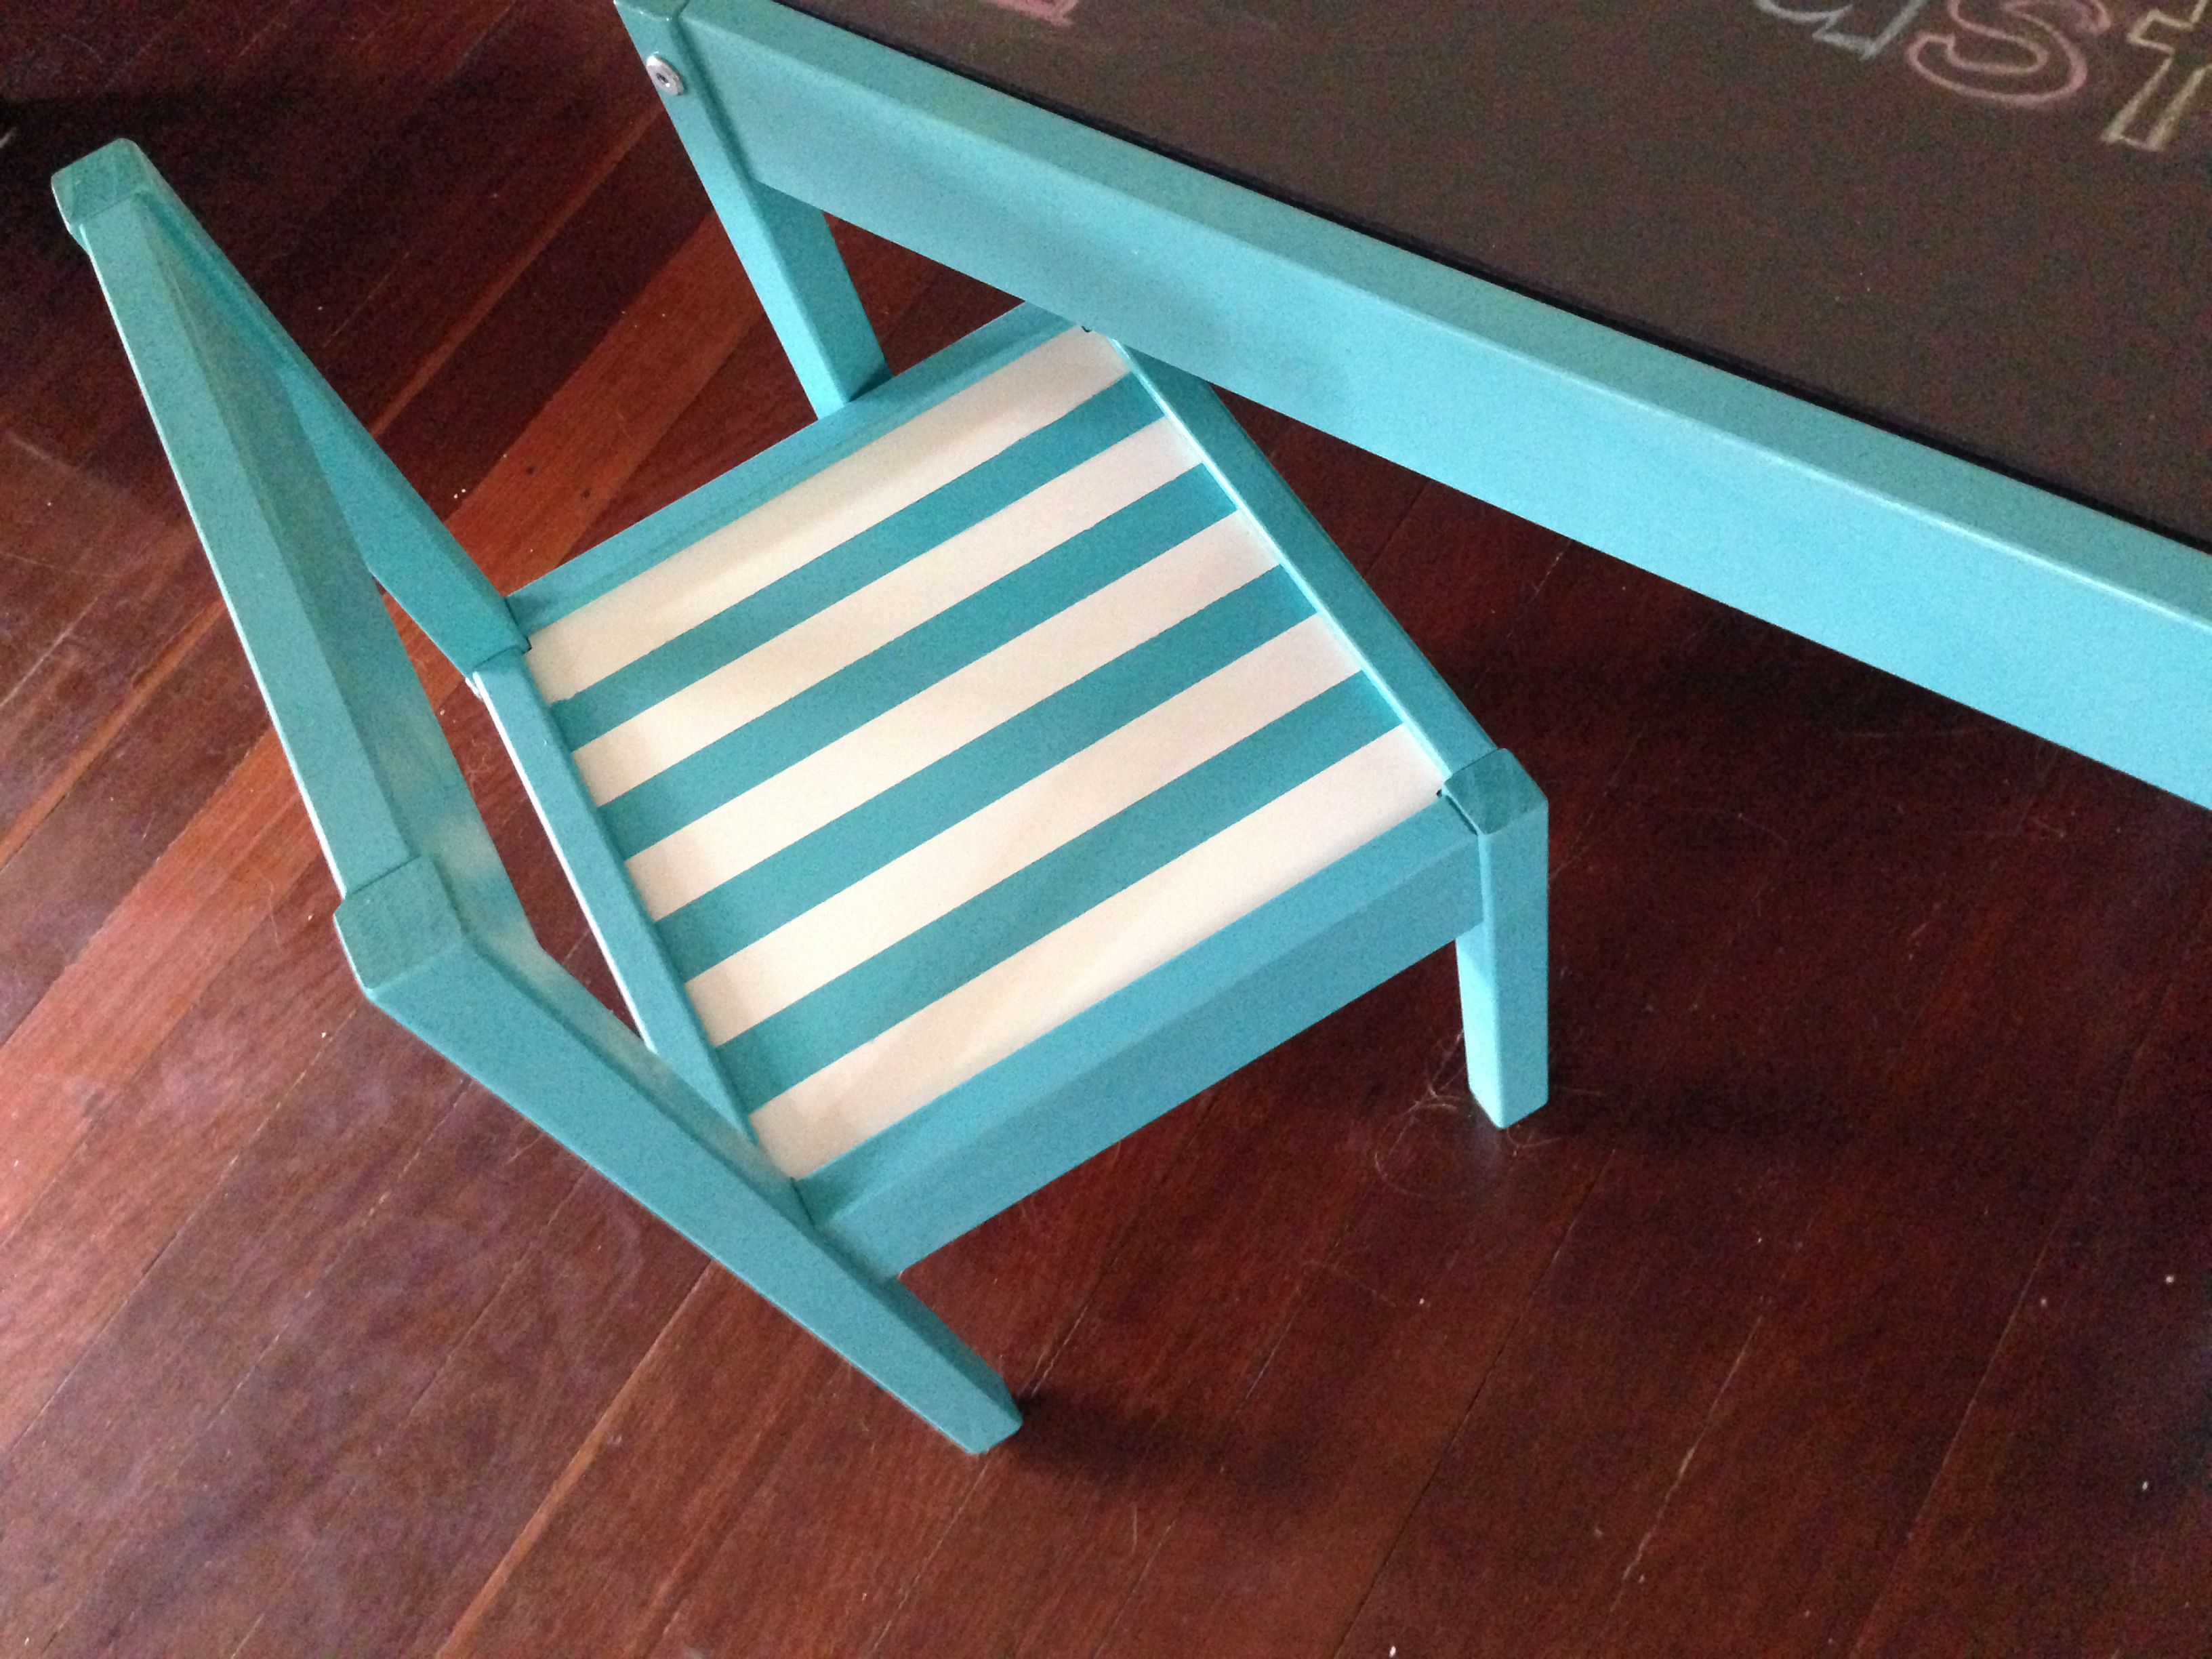 Chair Stripes On Chair Done Using Painters Tape To Protect